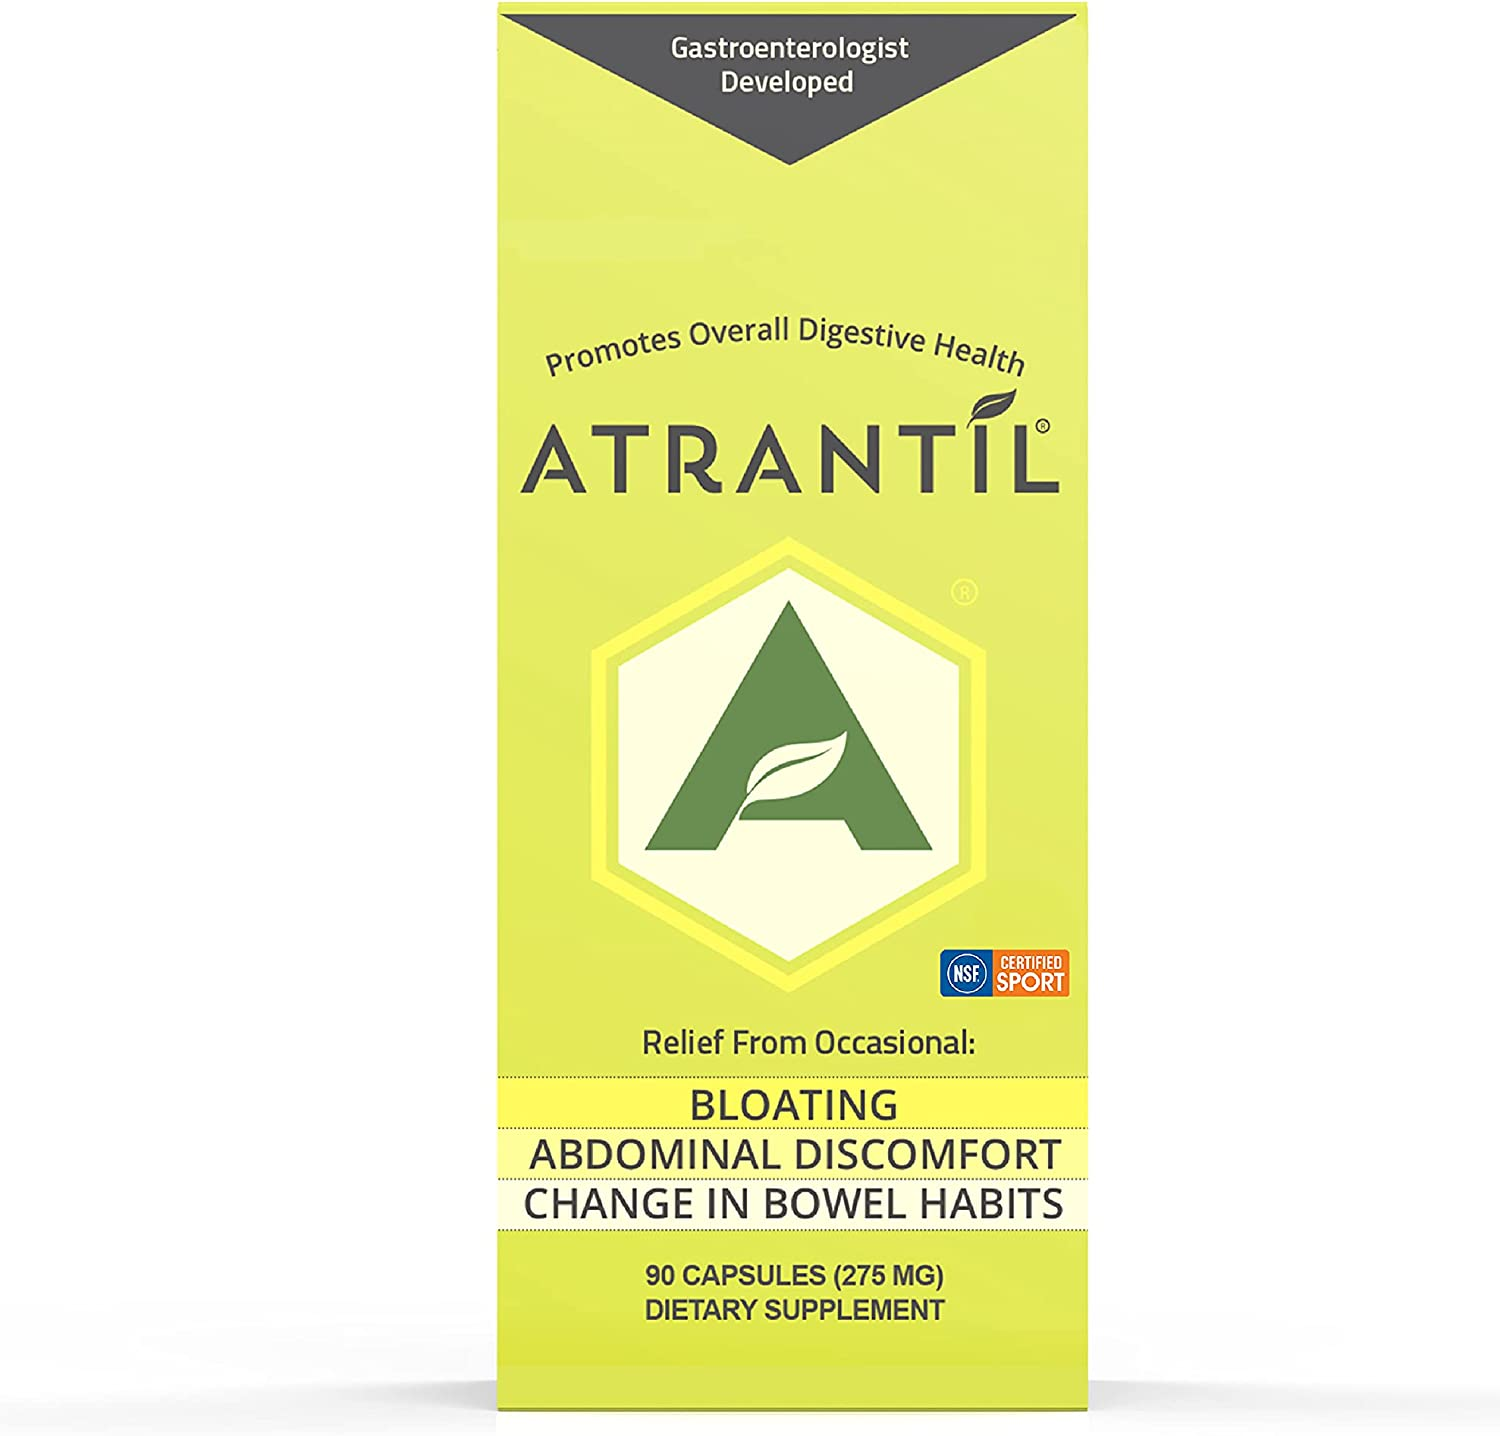 Atrantil 90 Capsules-Antioxidant Packed Polyphenol for Bloating and Gas Relief, Abdominal Discomfort, Constipation, Diarrhea, Postbiotic, Change in Bowel Habits and Everyday Digestive Health. : Health & Household